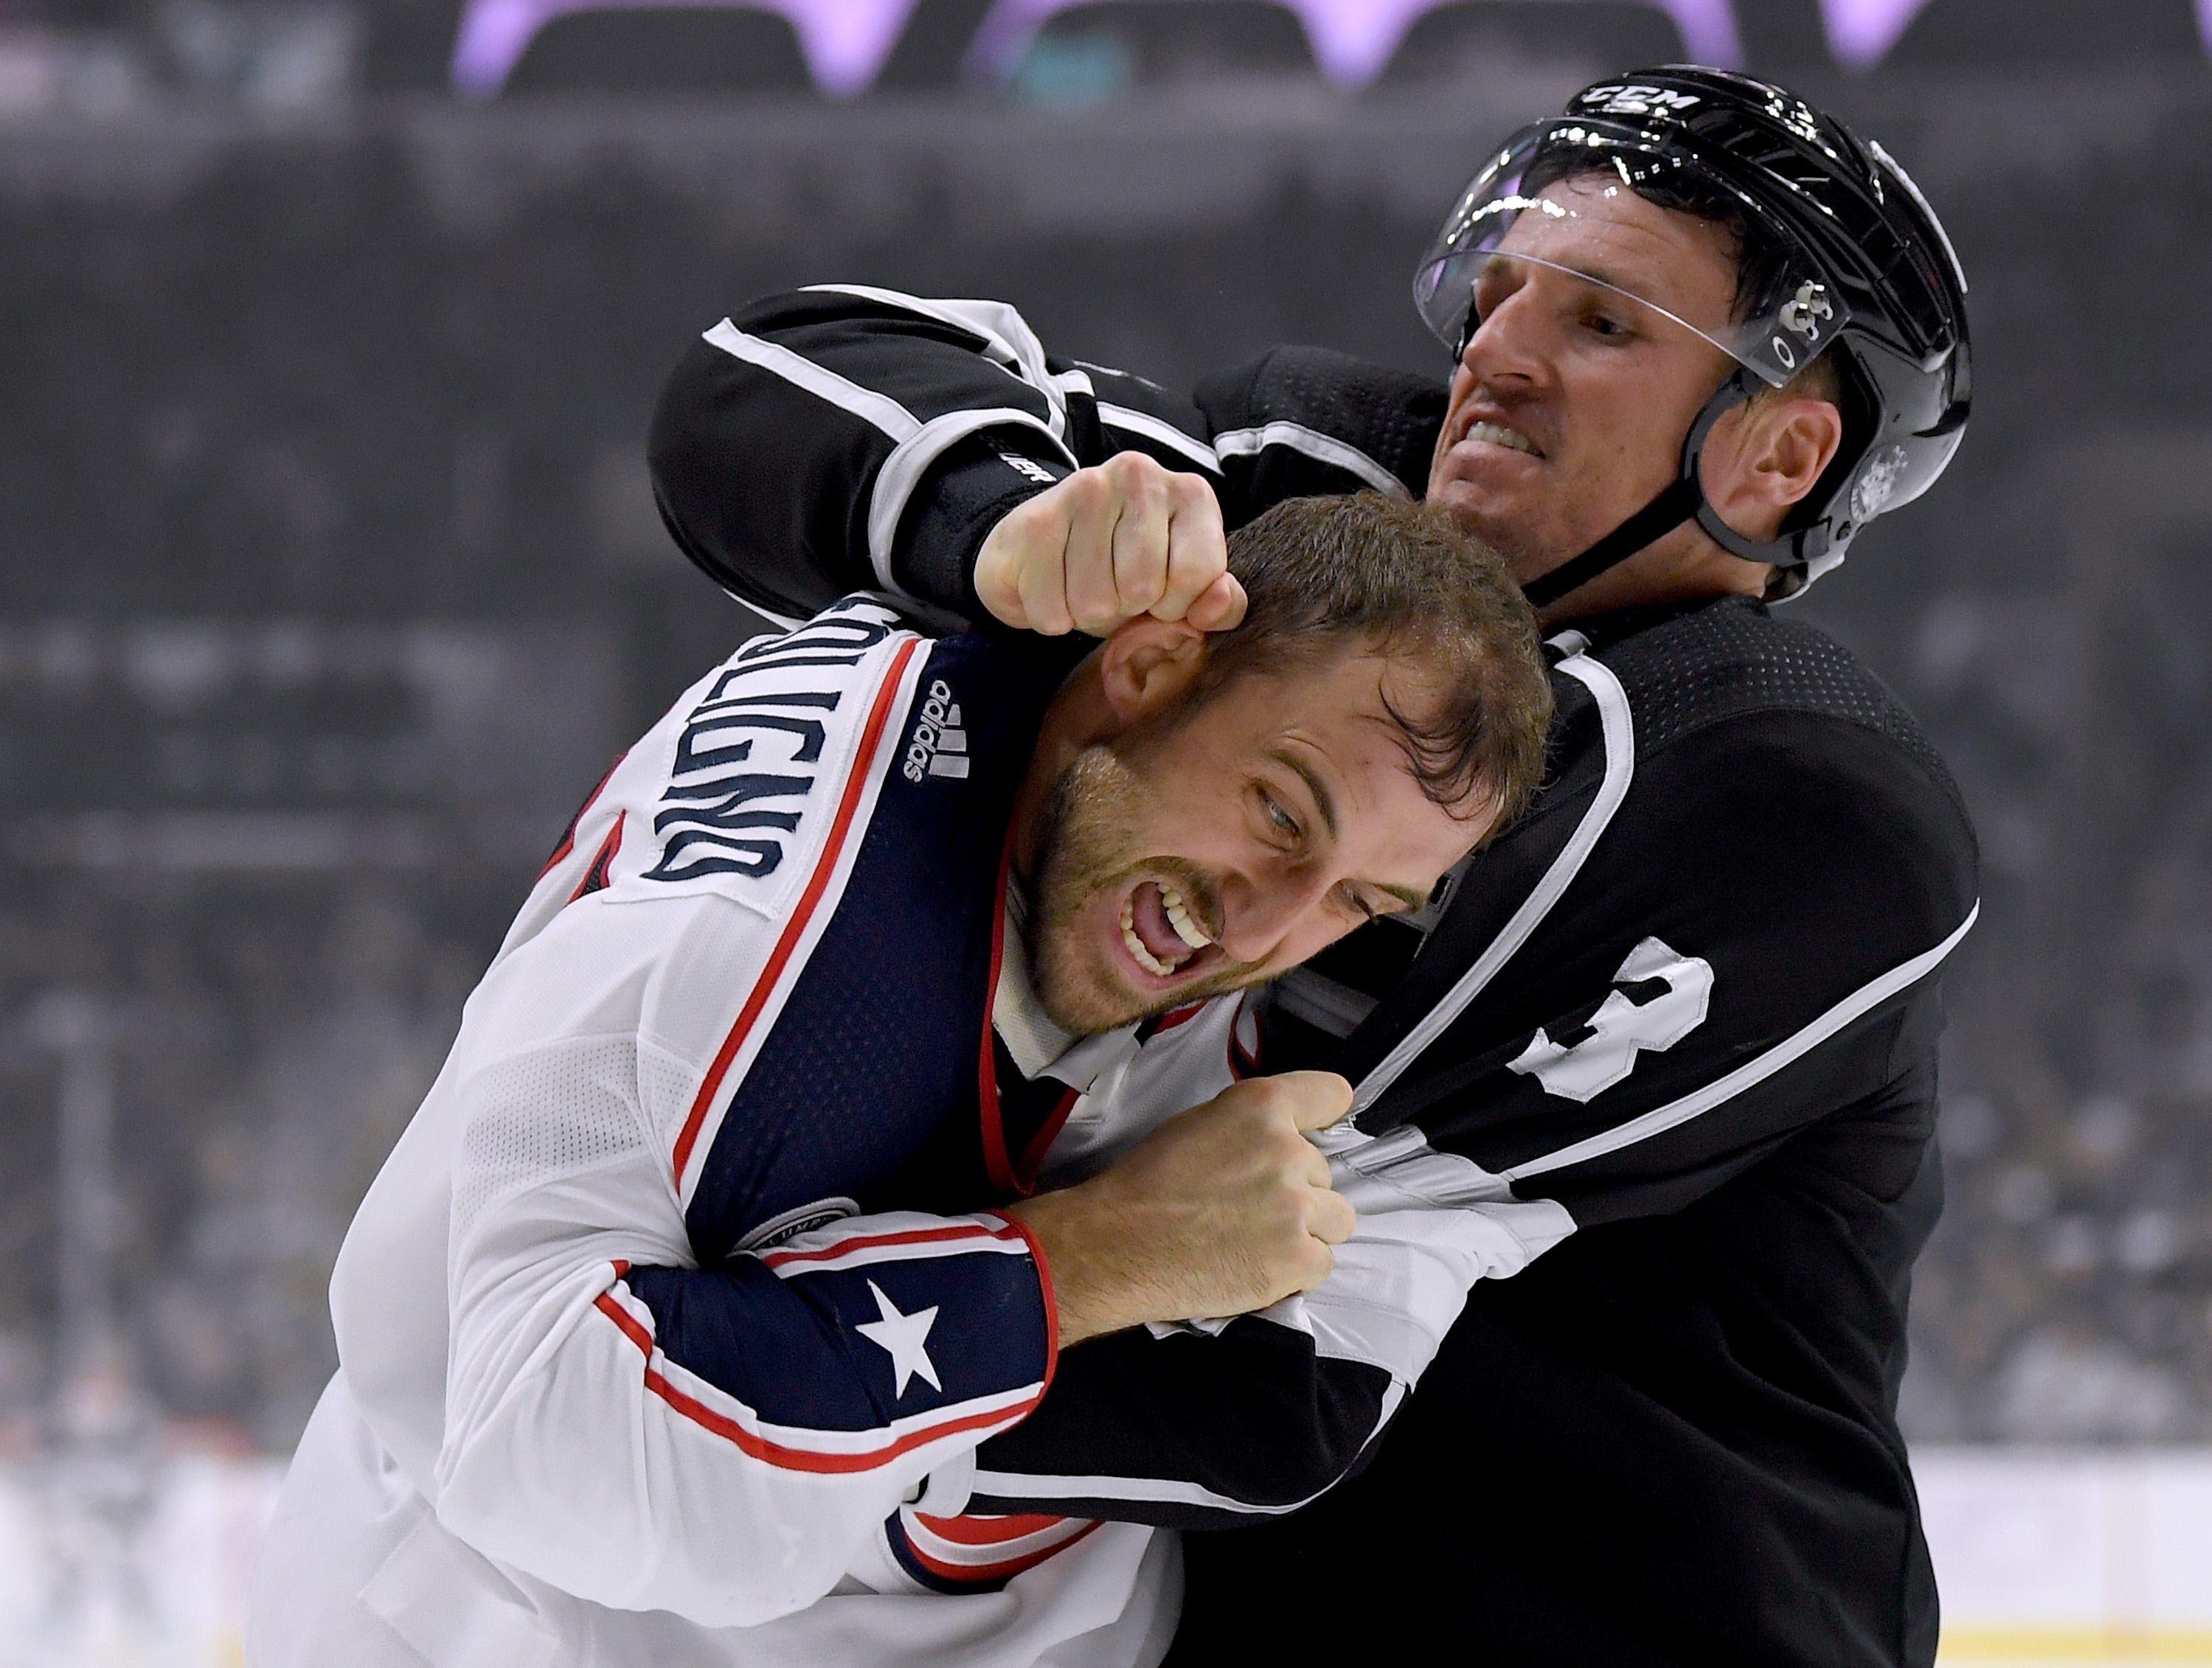 Nov. 3: Blue Jackets' Nick Foligno vs. Kings' Dion Phaneuf.